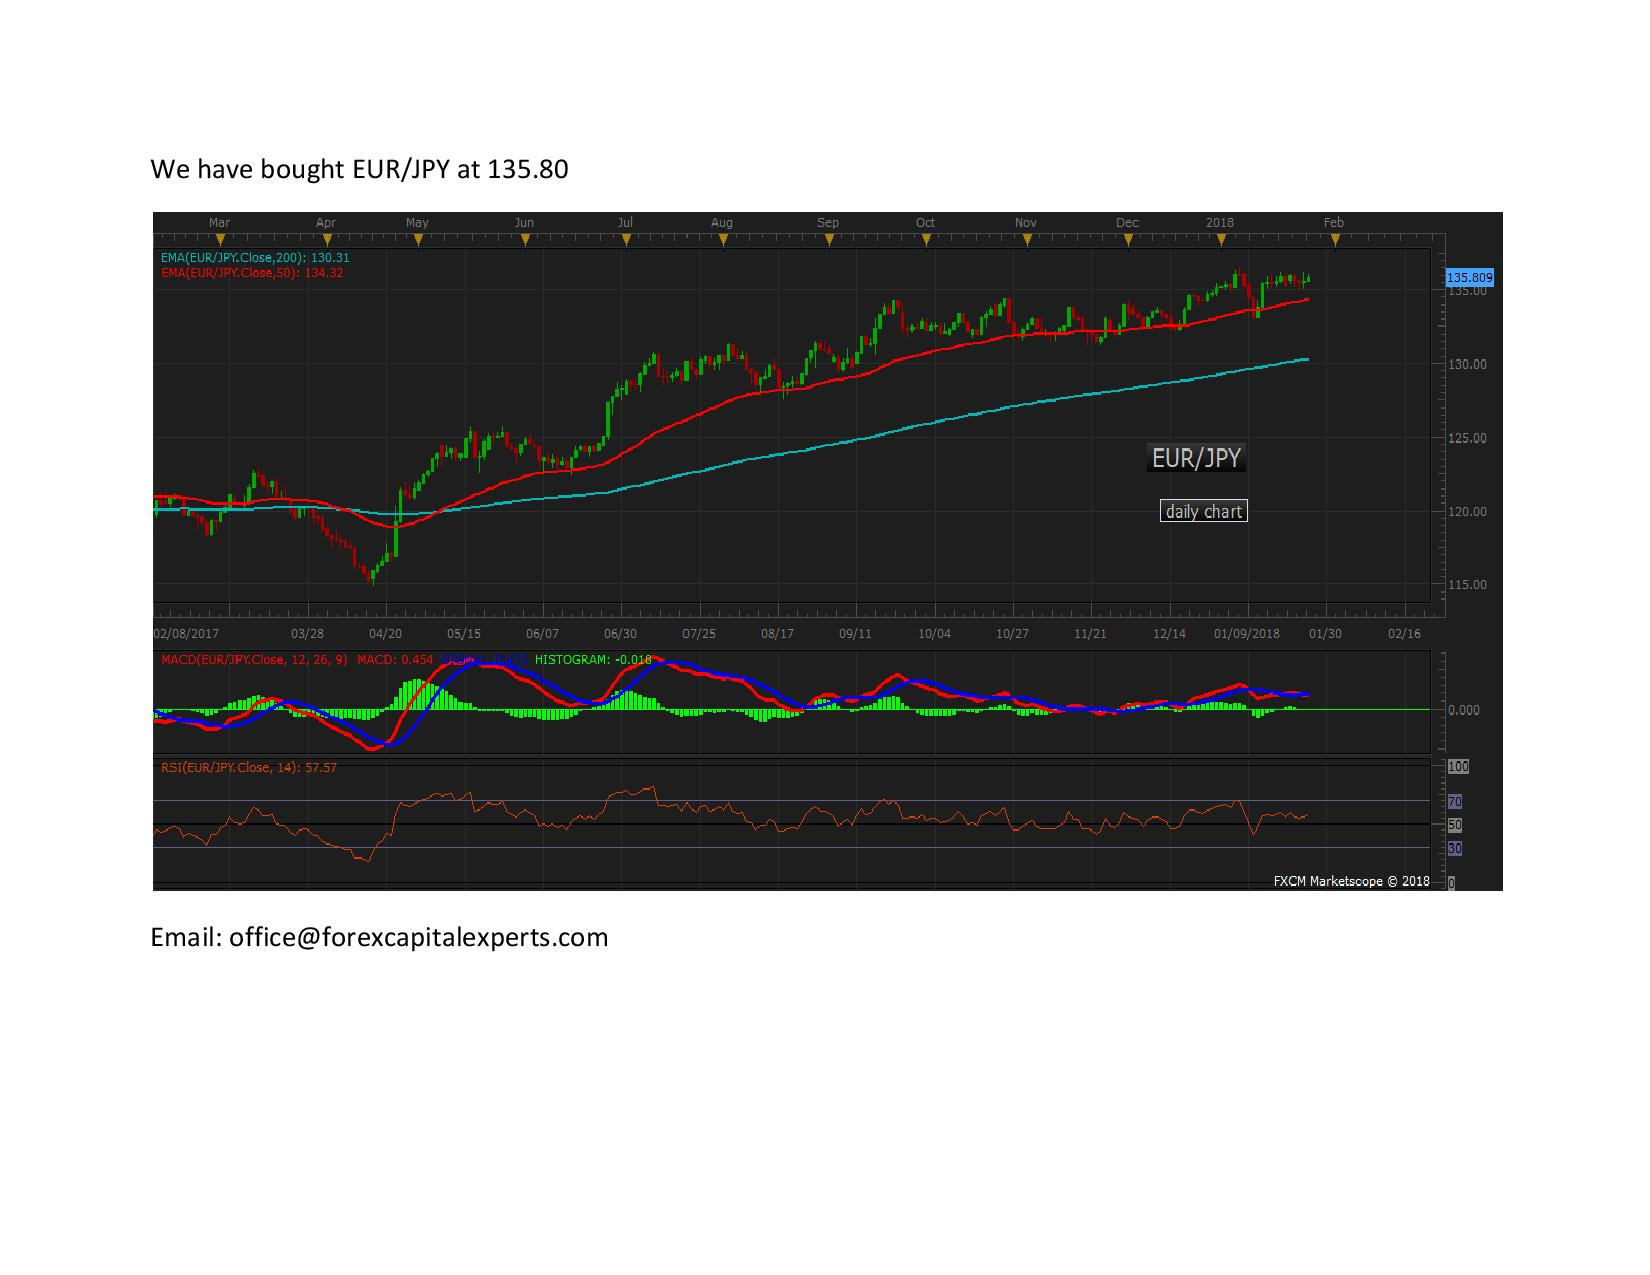 We have bought EURJPY page 001